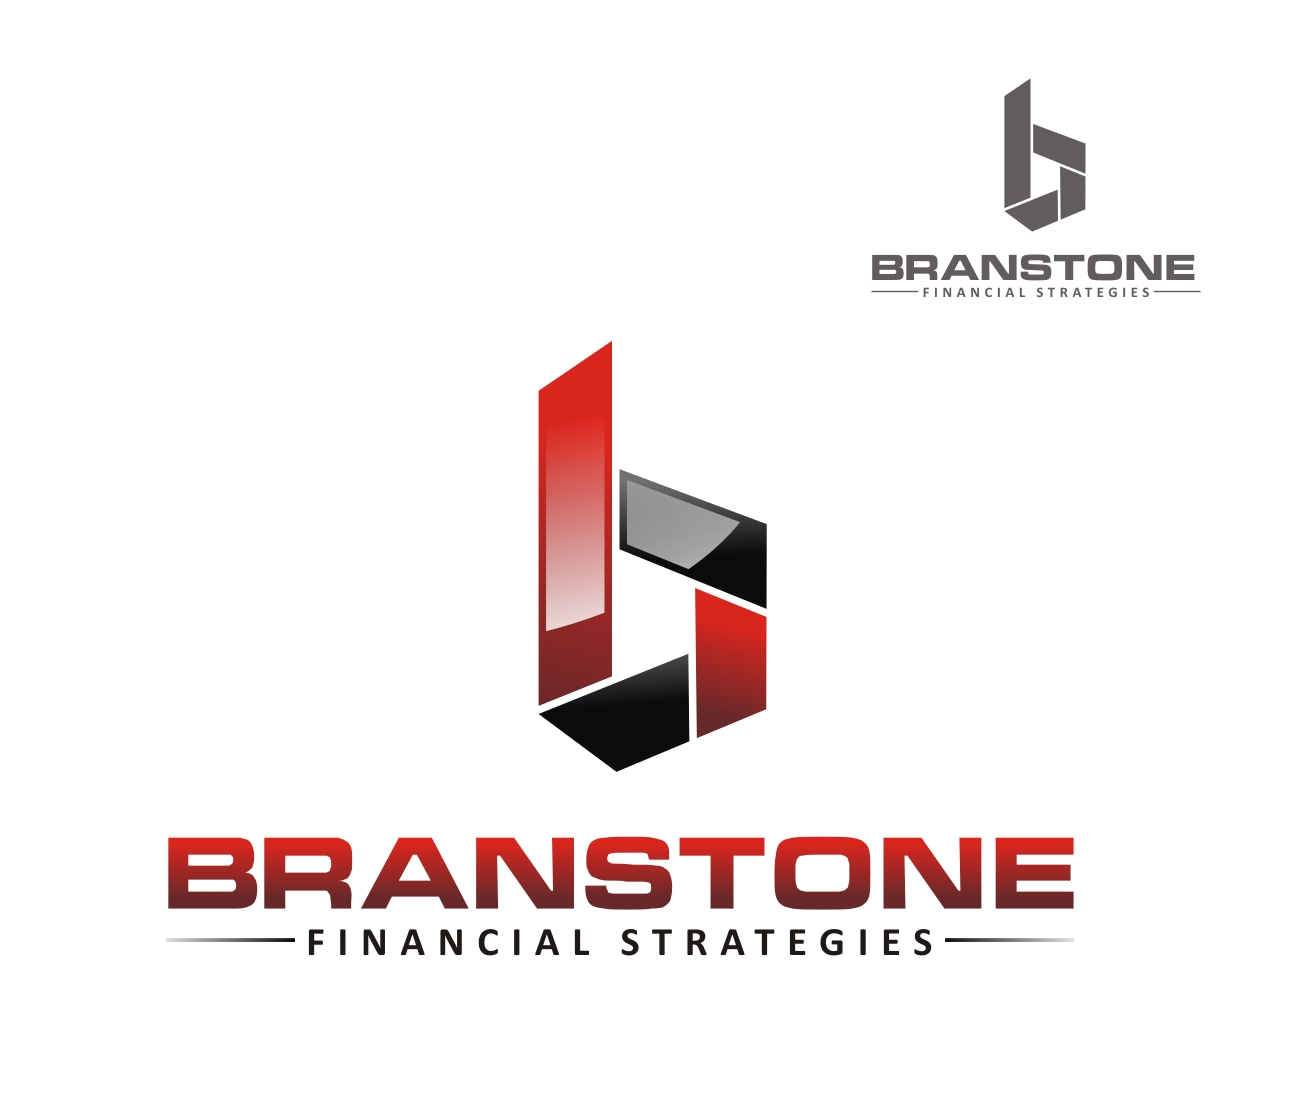 Logo Design by Reivan Ferdinan - Entry No. 300 in the Logo Design Contest Inspiring Logo Design for Branstone Financial Strategies.